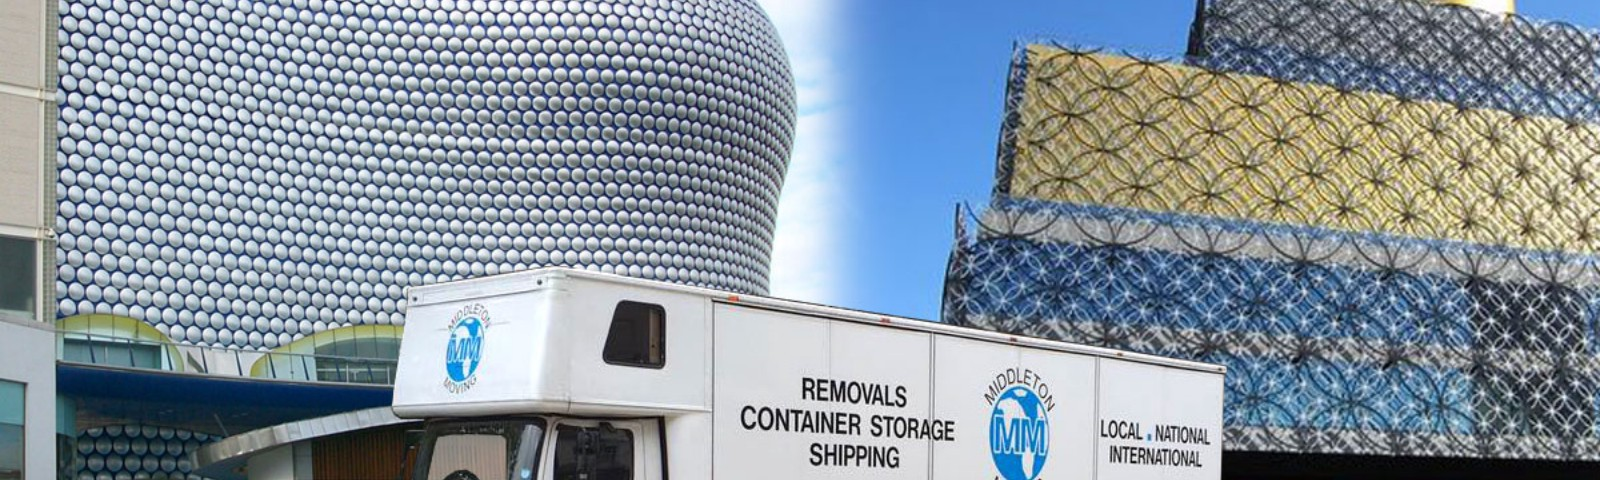 house-removals-Birmingham